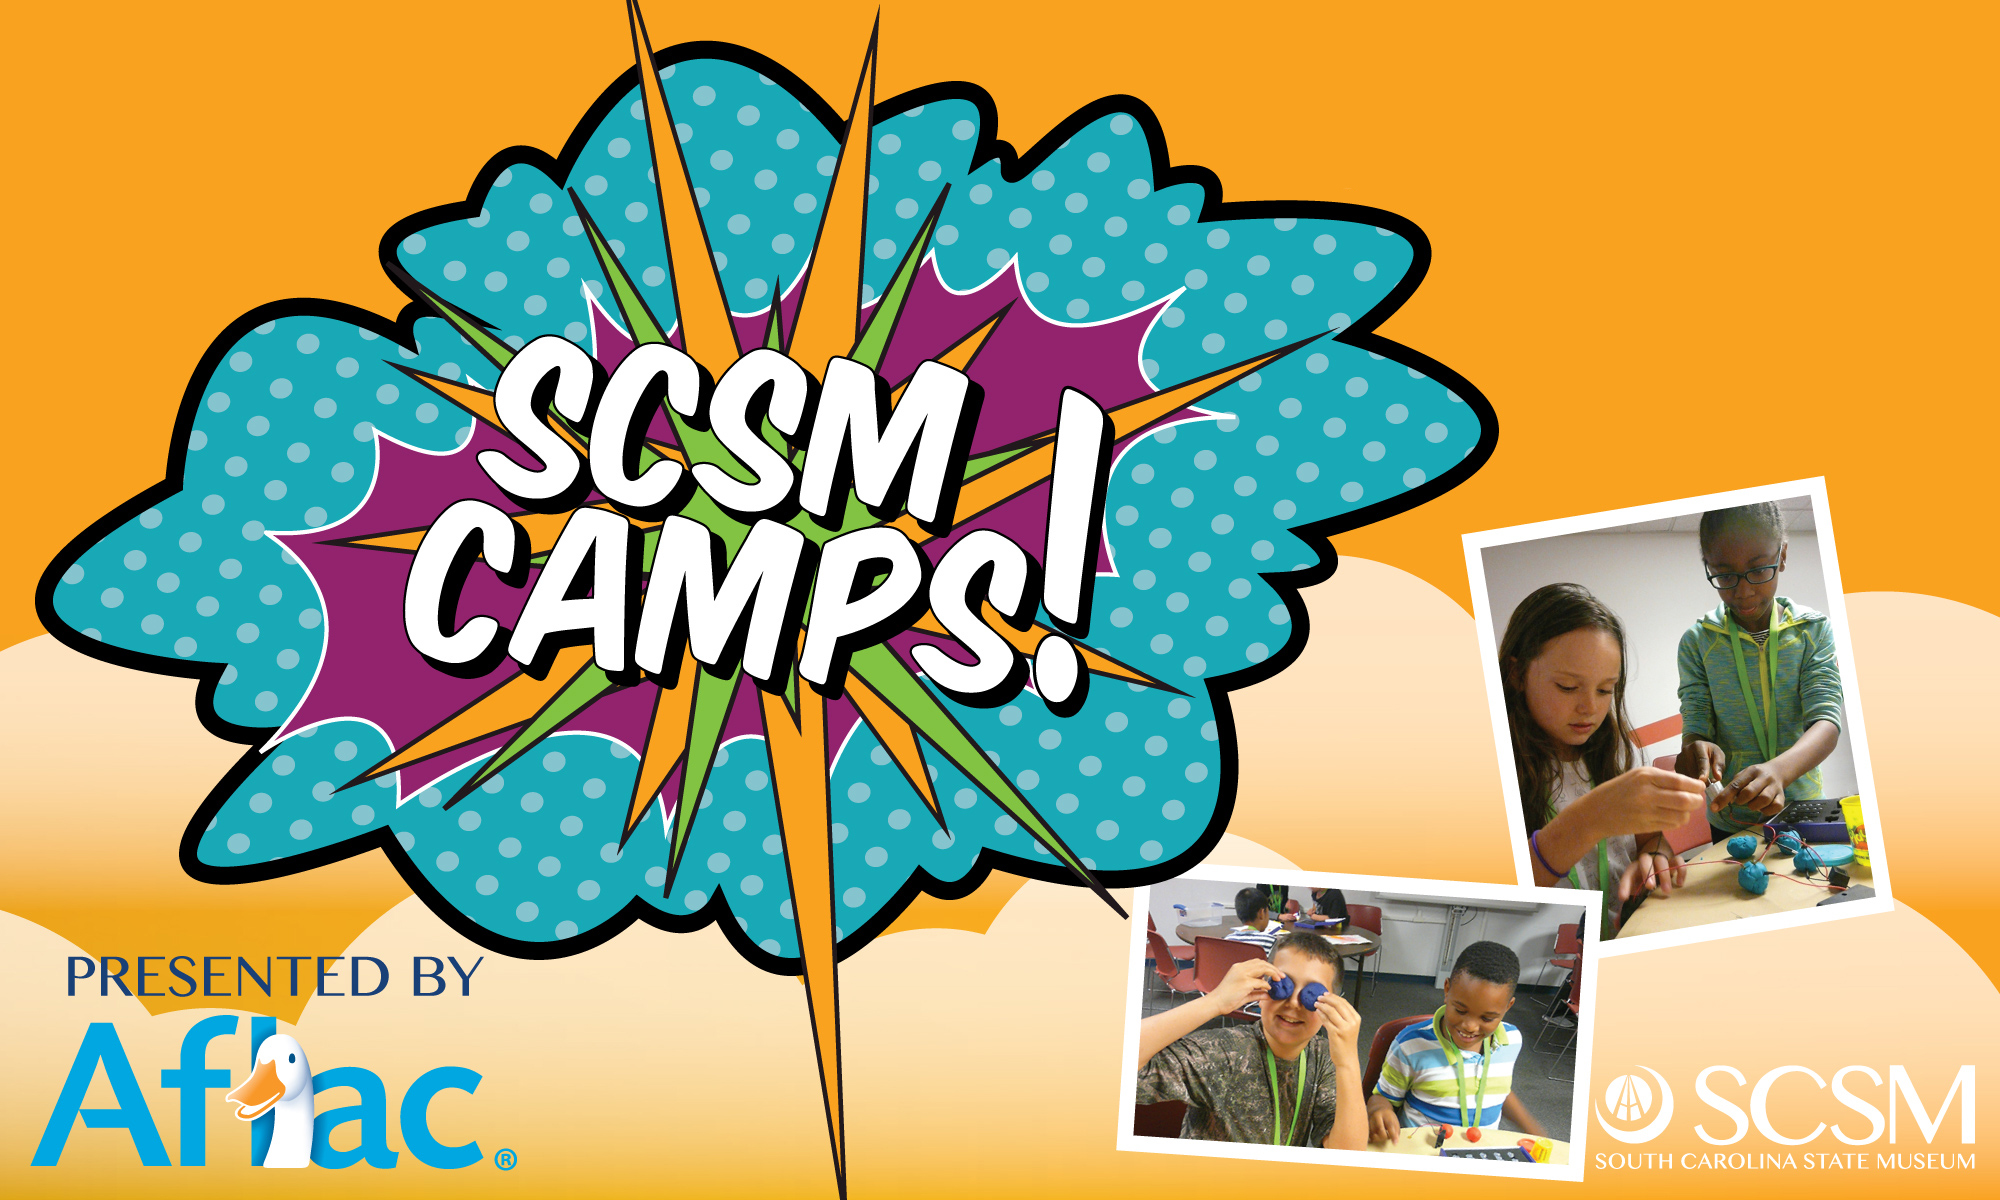 Columbia, Summer Camps, family fun